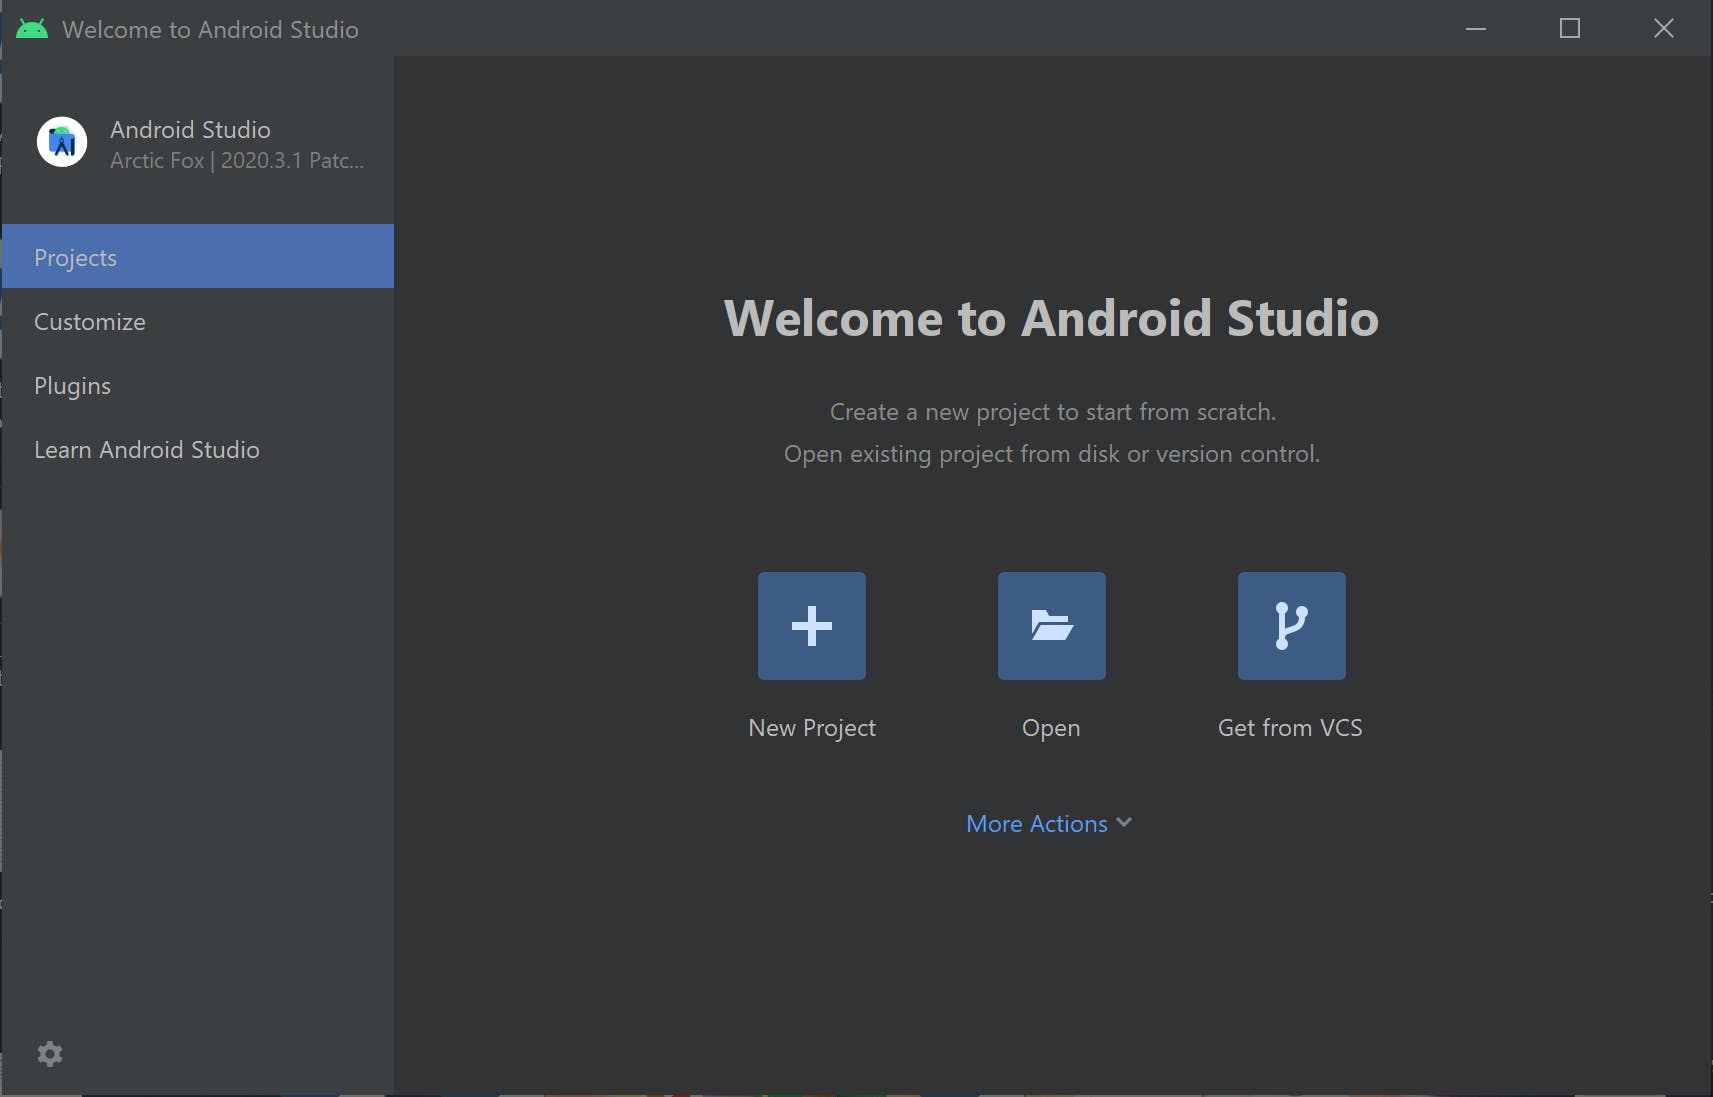 Welcome to Android Studio Screen